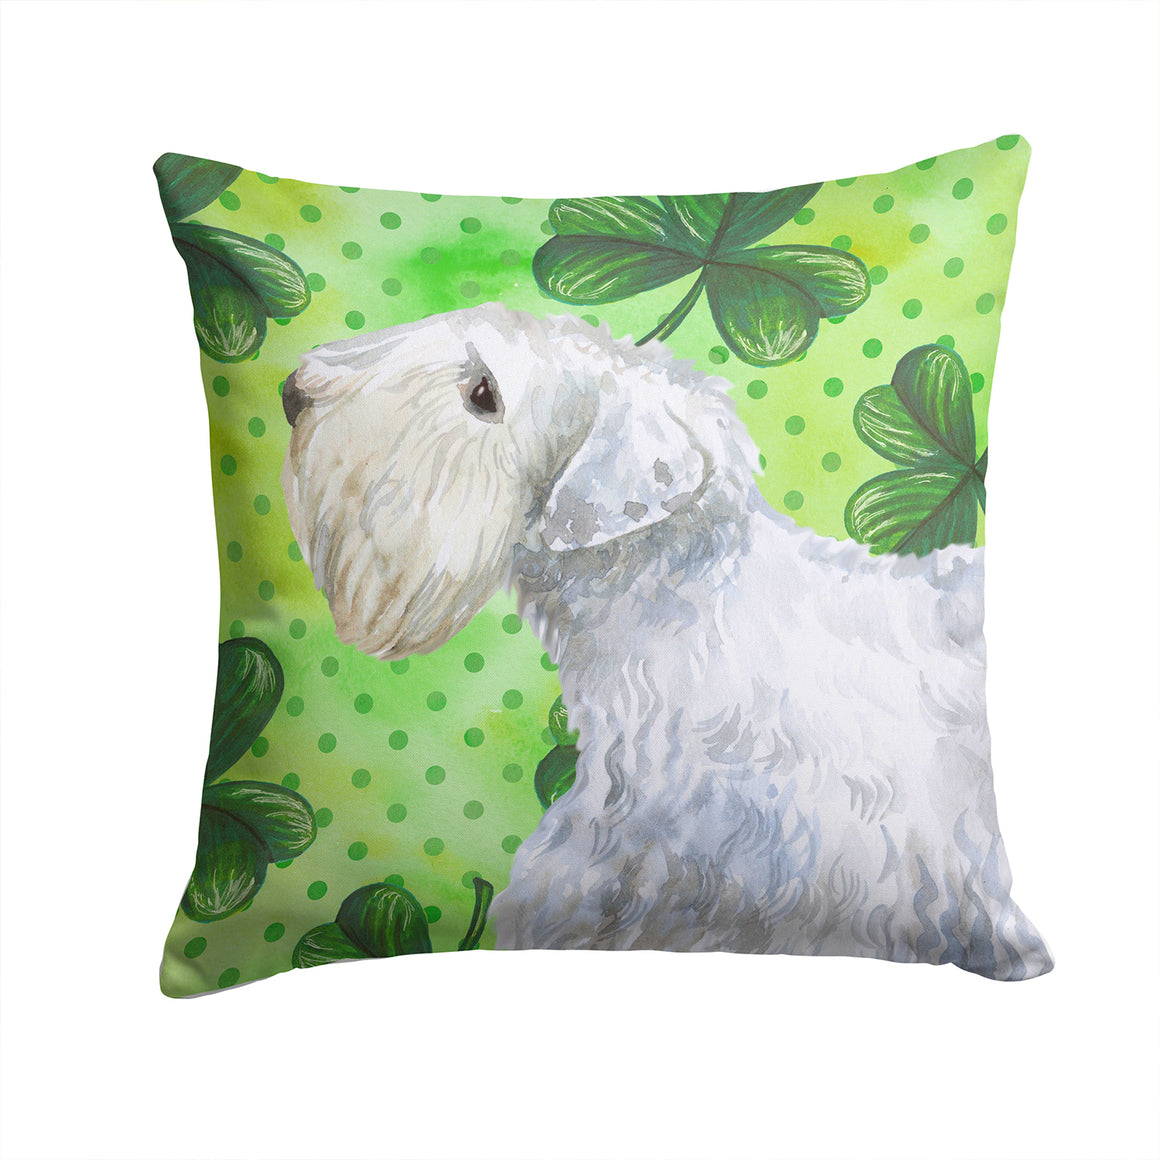 Buy this Sealyham Terrier St Patrick's Fabric Decorative Pillow BB9858PW1414